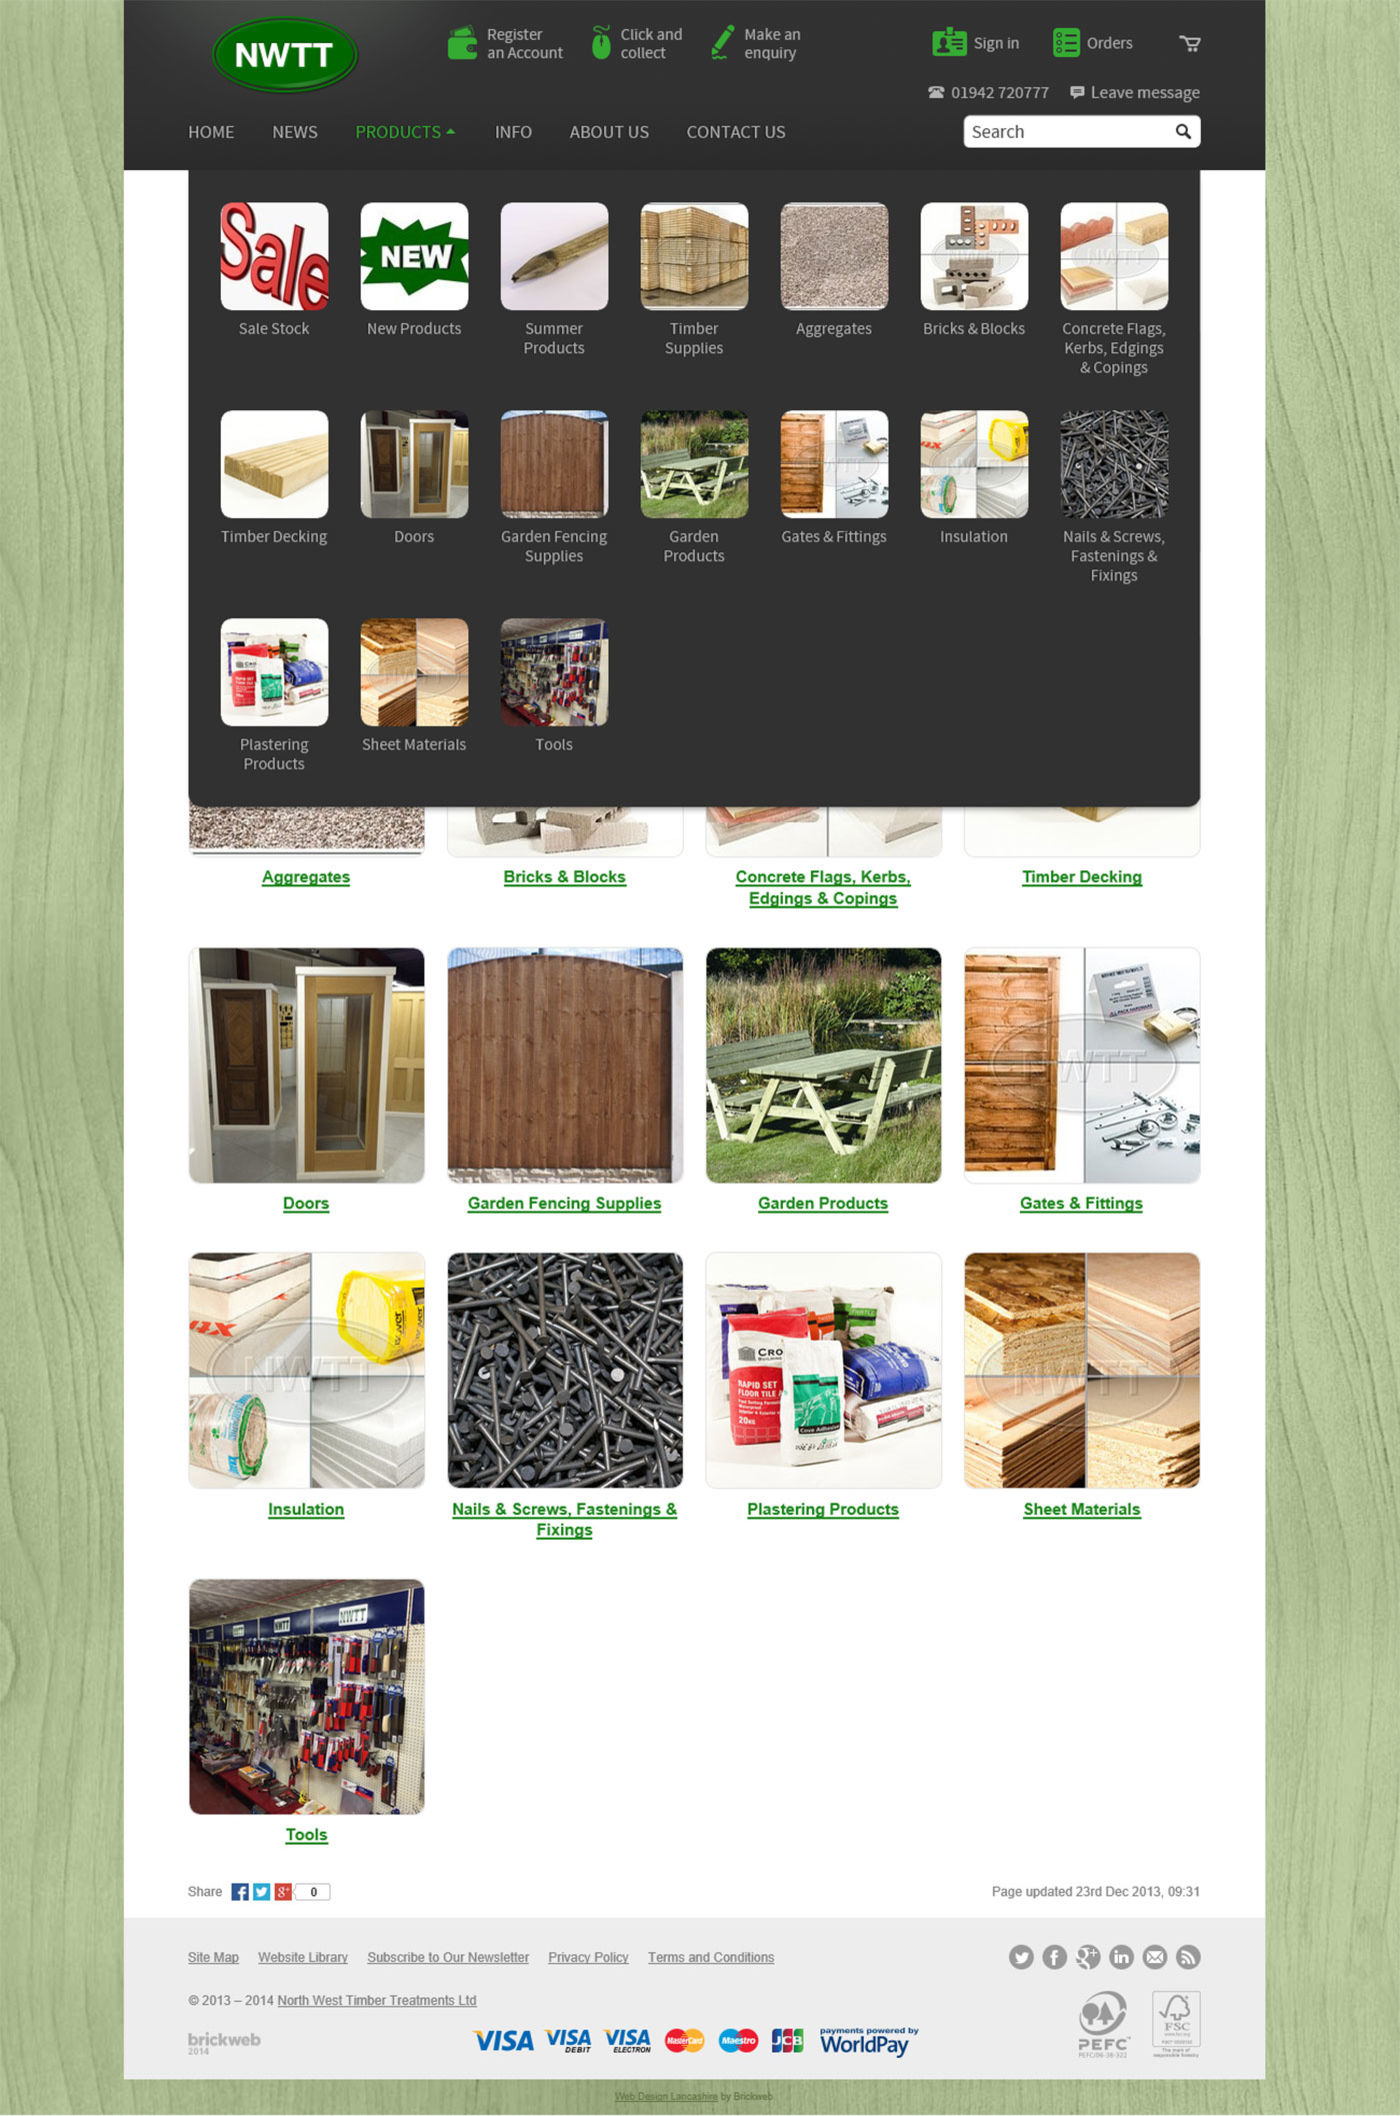 NWTT 2014 Products page